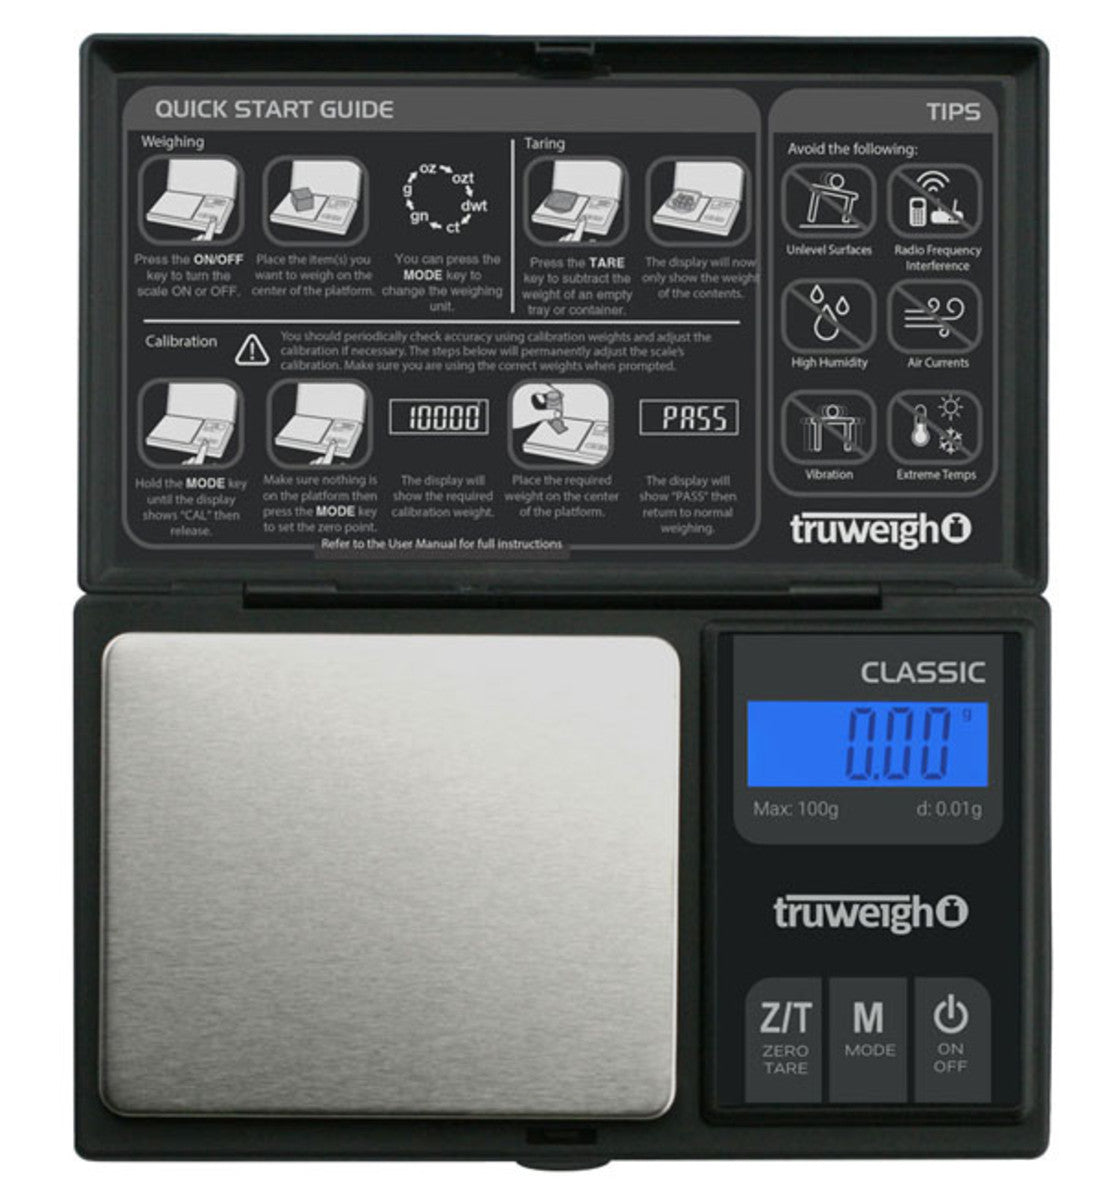 Truweigh Classic Digital Mini Scale - 100g x 0.01g / Black